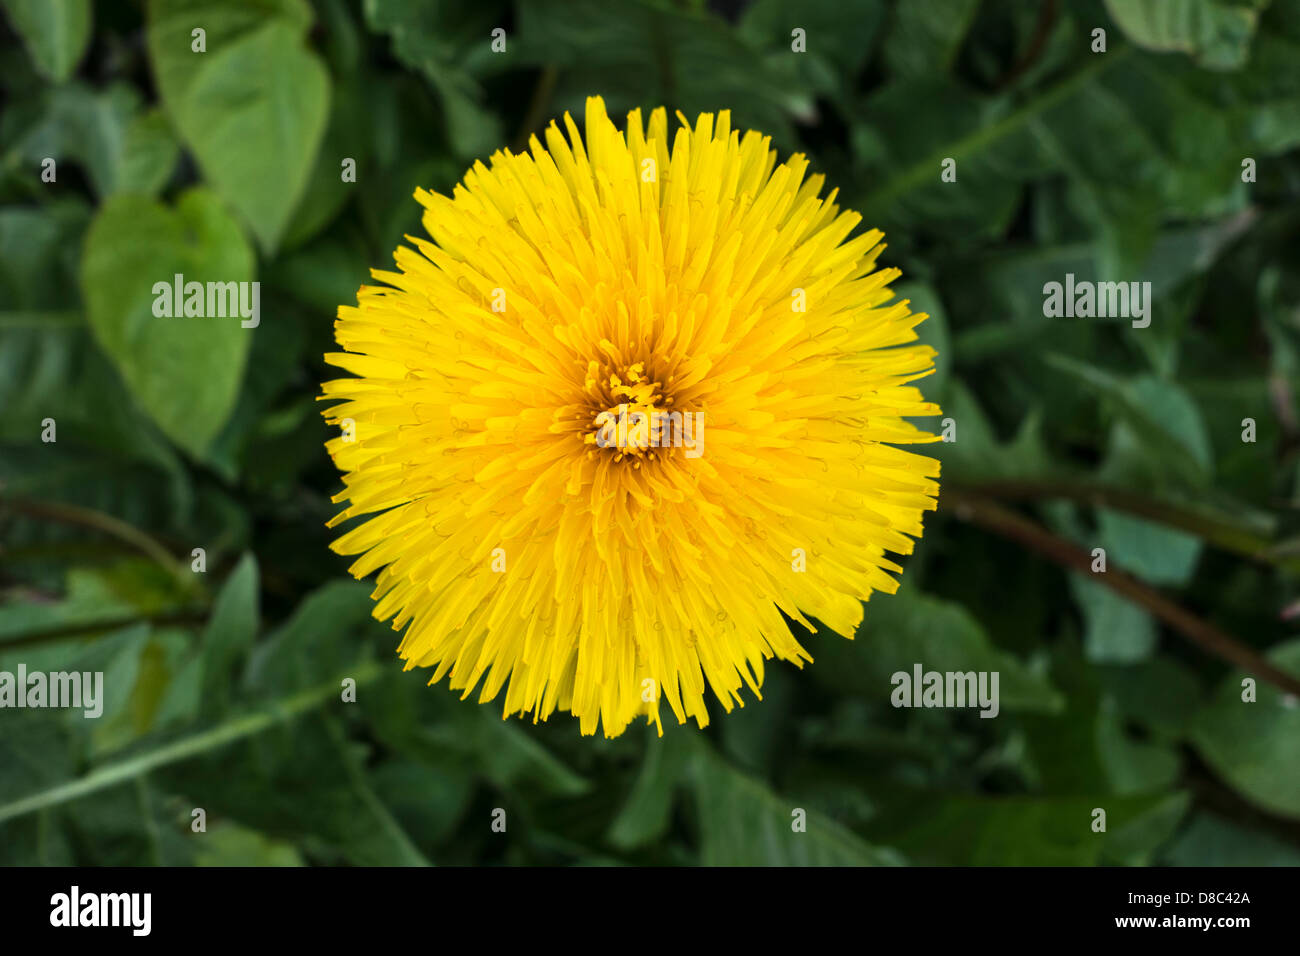 Closeup of a perfect Dandelion wild flower - Stock Image